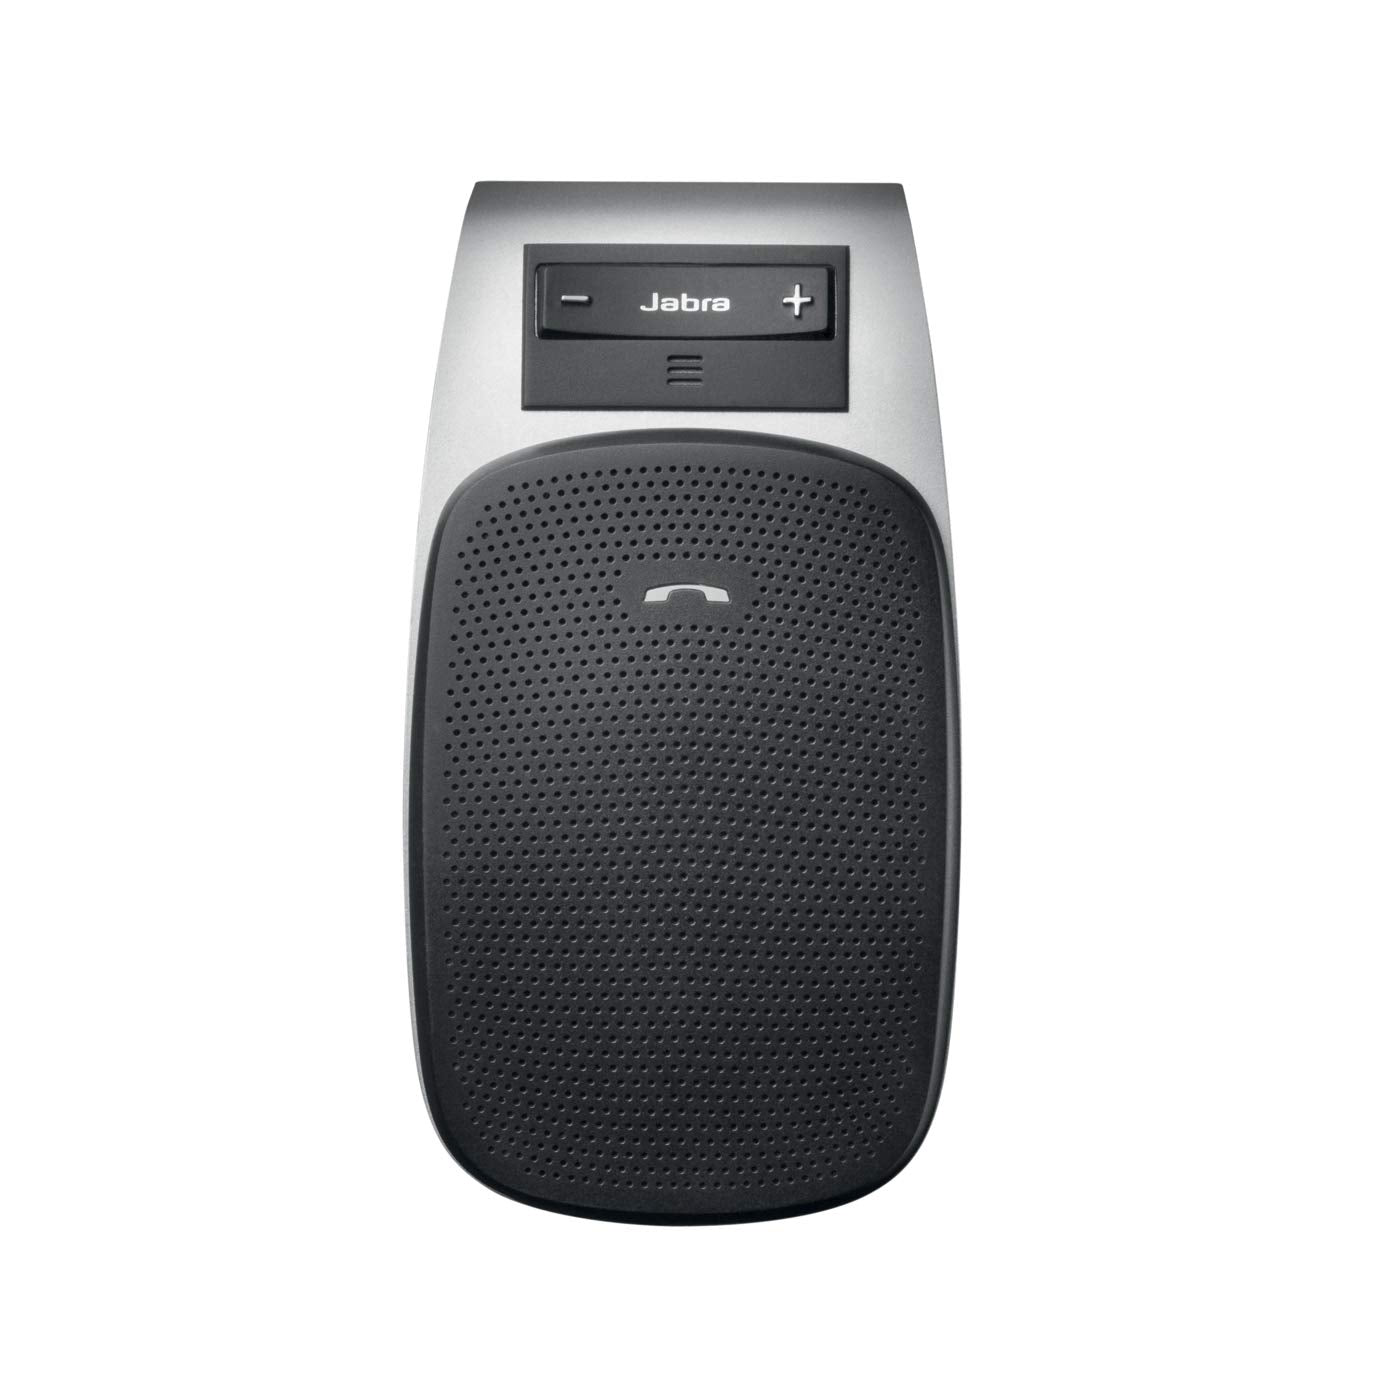 Jabra Drive Bluetooth Portable In-Car Speaker for Hands Free Calls